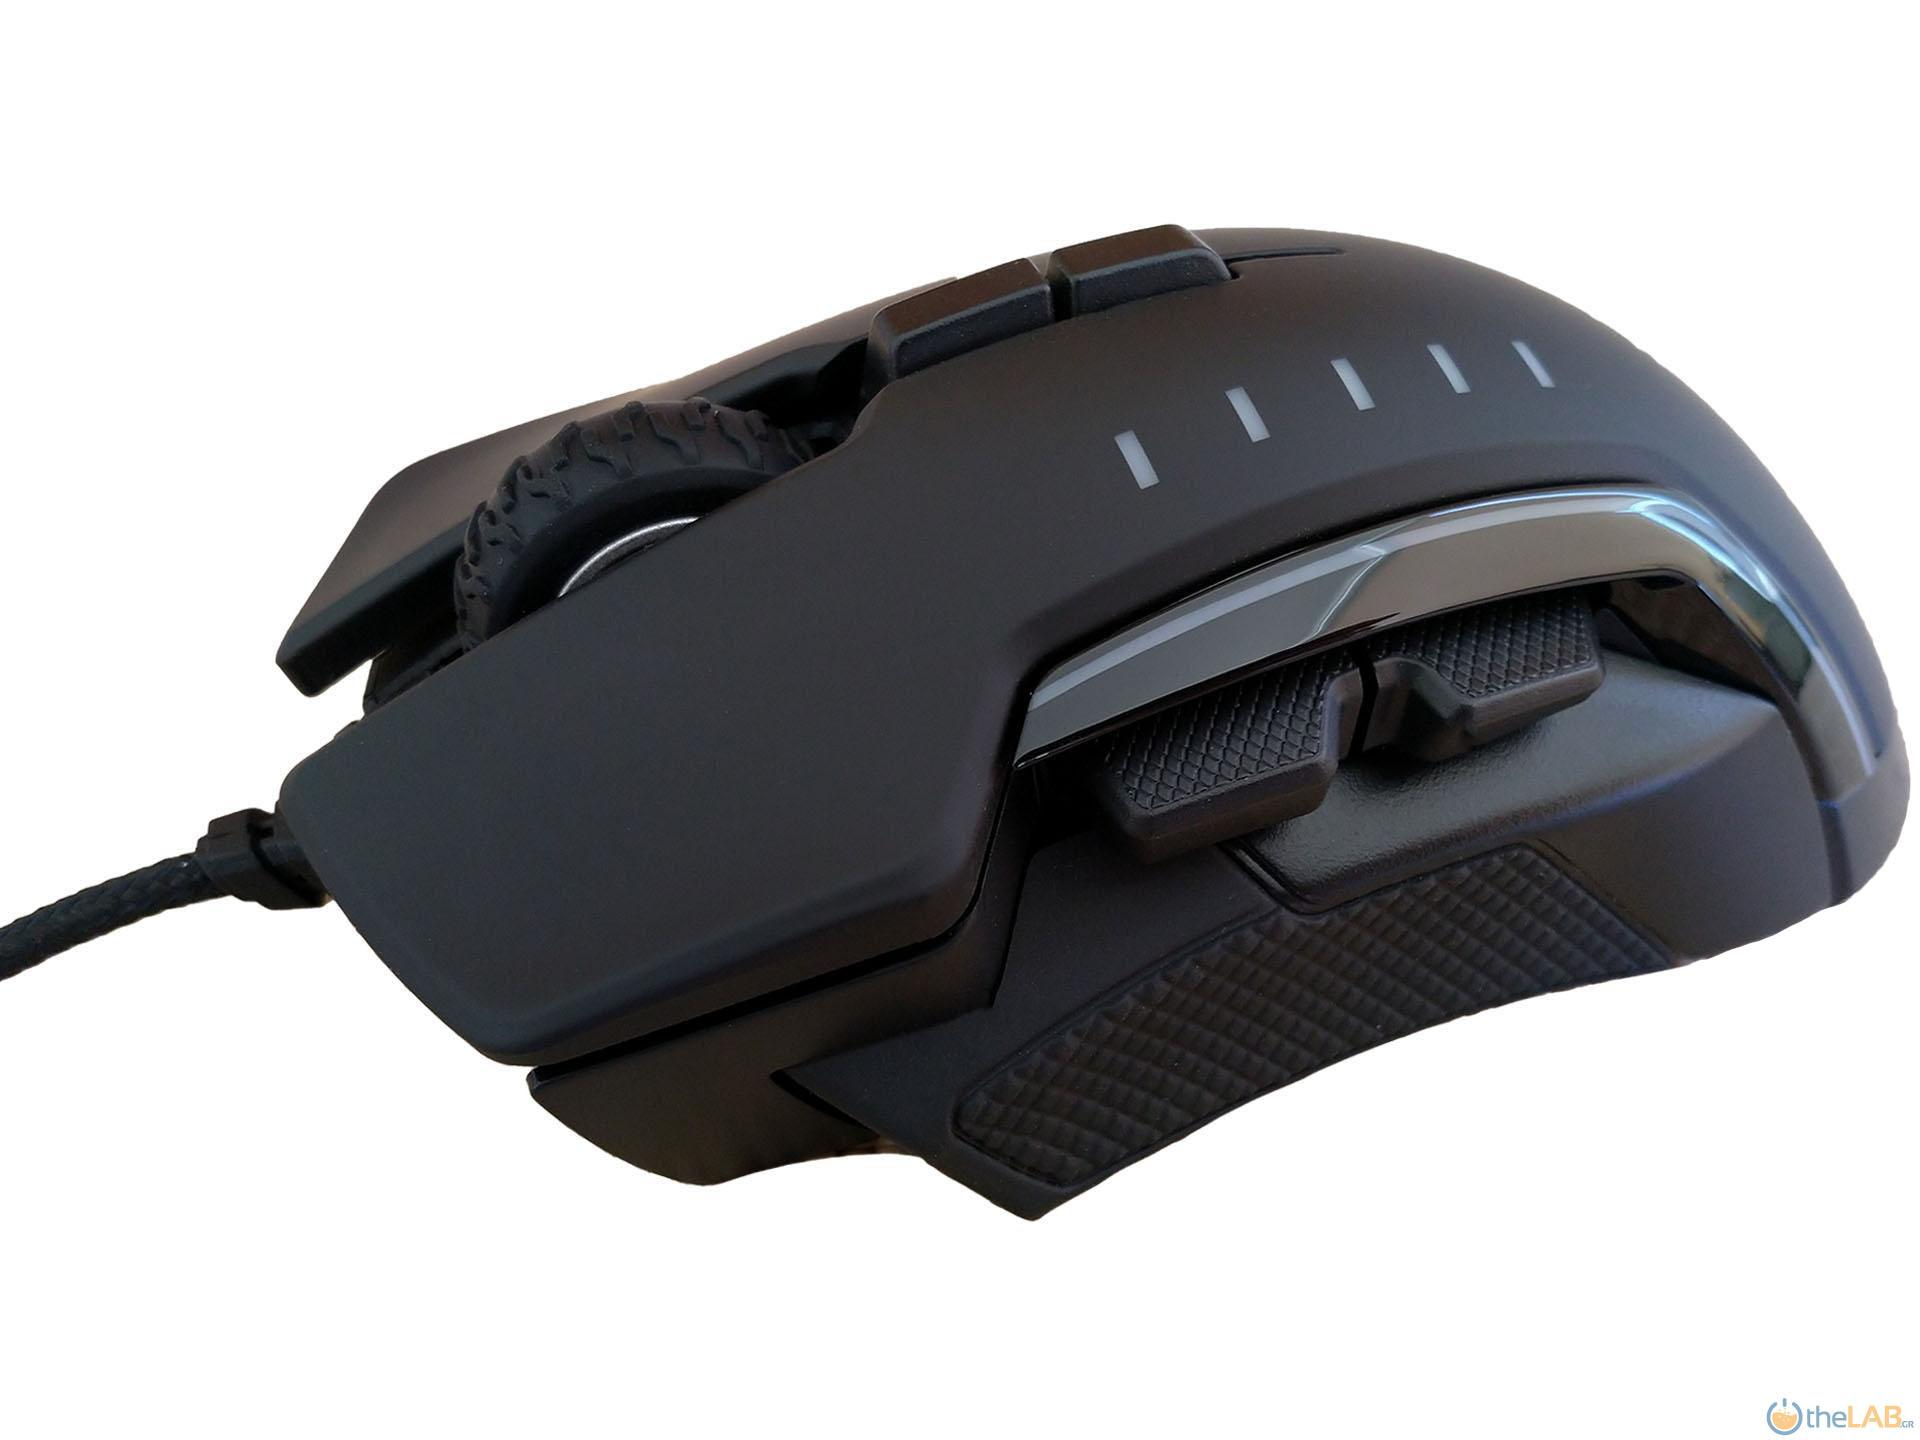 corsair-glaive-rgb-pro-gaming-mouse-review-mouse-left-side.jpg